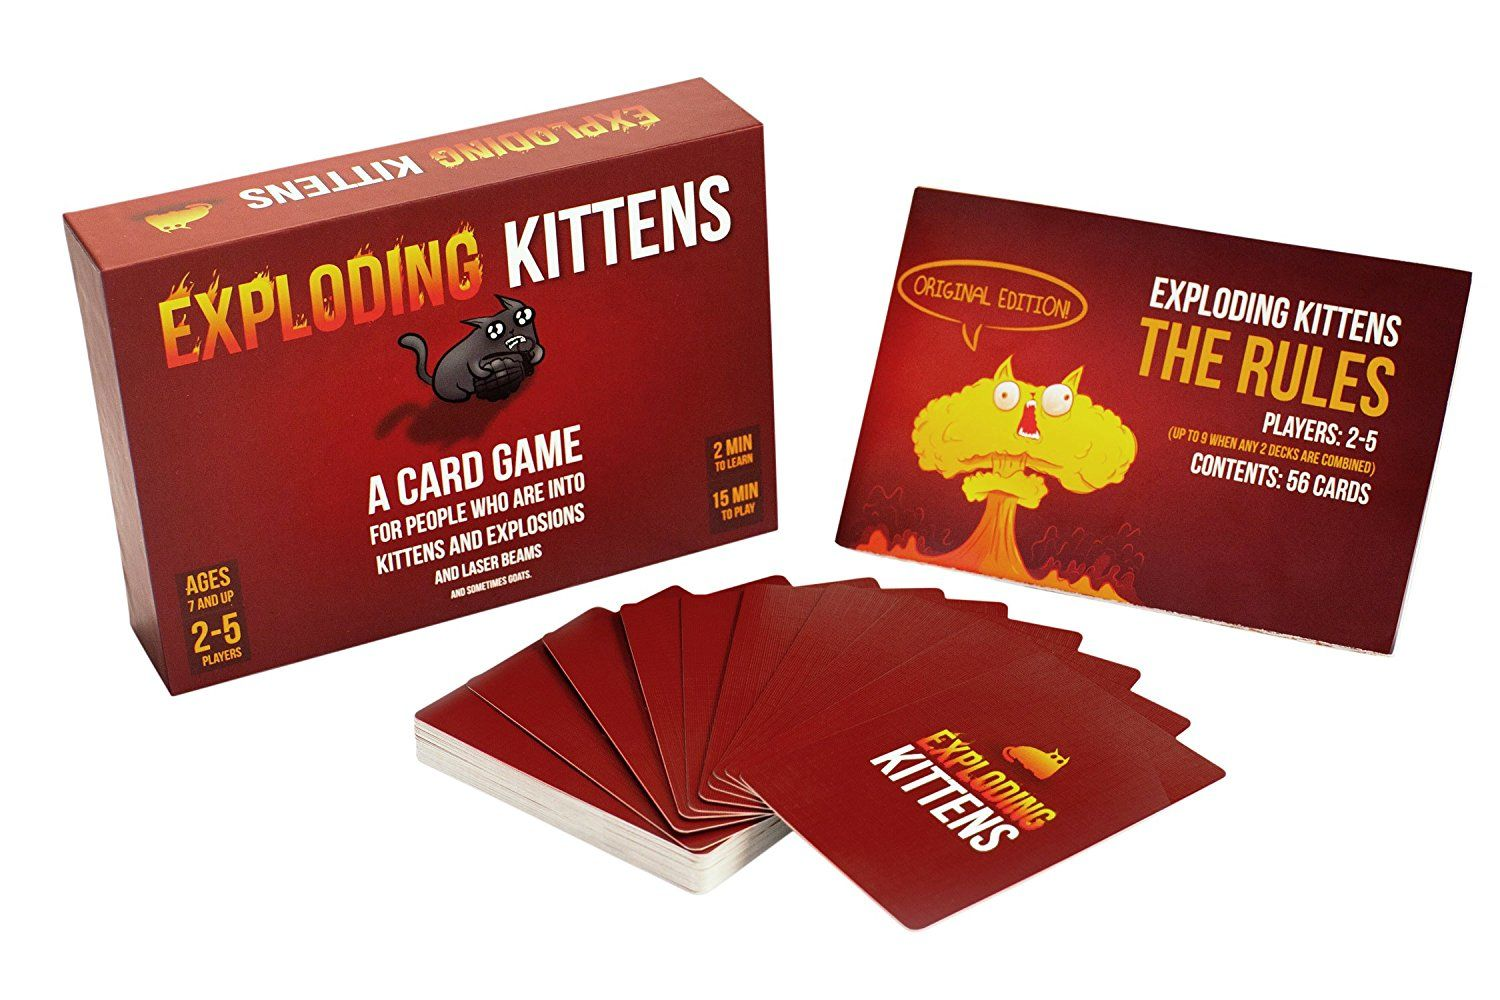 Family Board Games Exploding Kittens This Is The Version Of Kitten Powered Russian Roulette With Lase Exploding Kittens Card Game Exploding Kittens Card Games